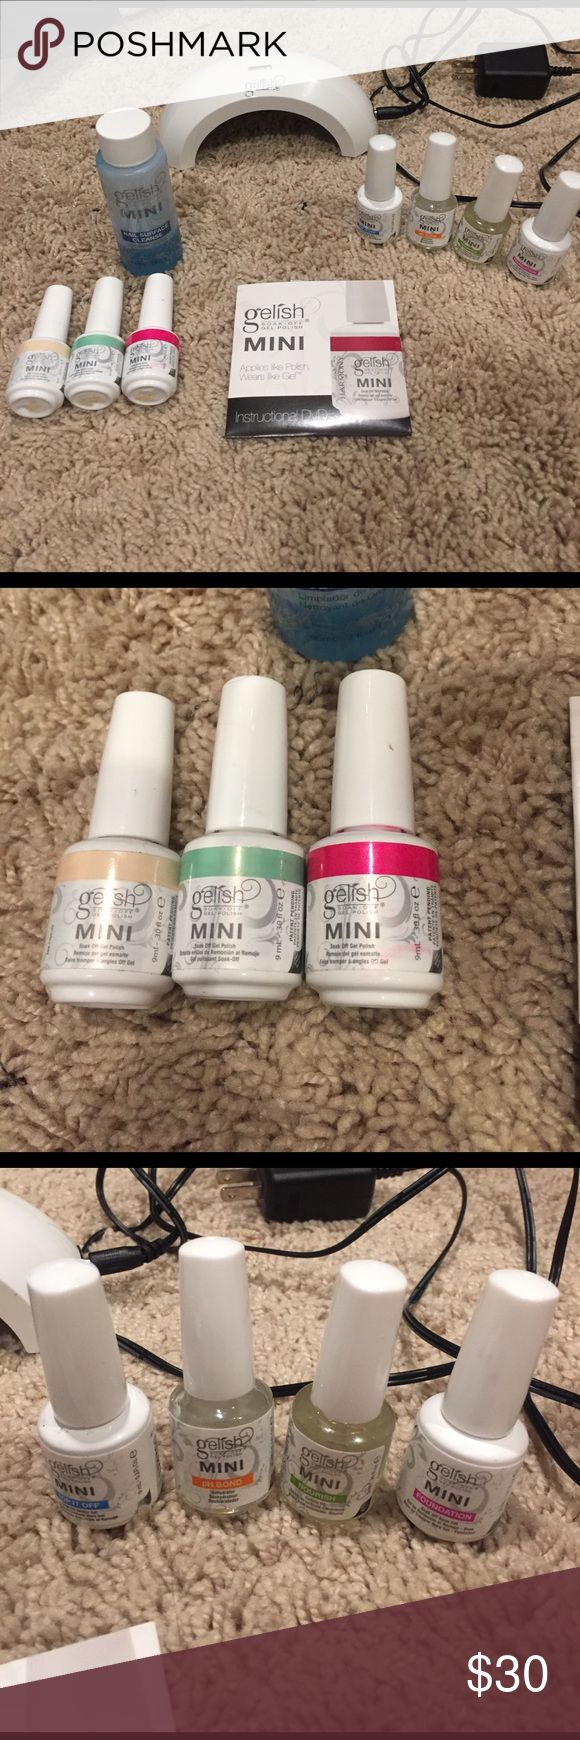 Gelish/shellac nail kit Gelish nail polish kit with light, 3 colors, nail surface cleanse, foundation, top cost, nourish oil and pH bond. Barely used, no more than 5 times. In excellent condition and all bottles are nearly full except for the cleanse, which is approx 1/4 full. Makeup